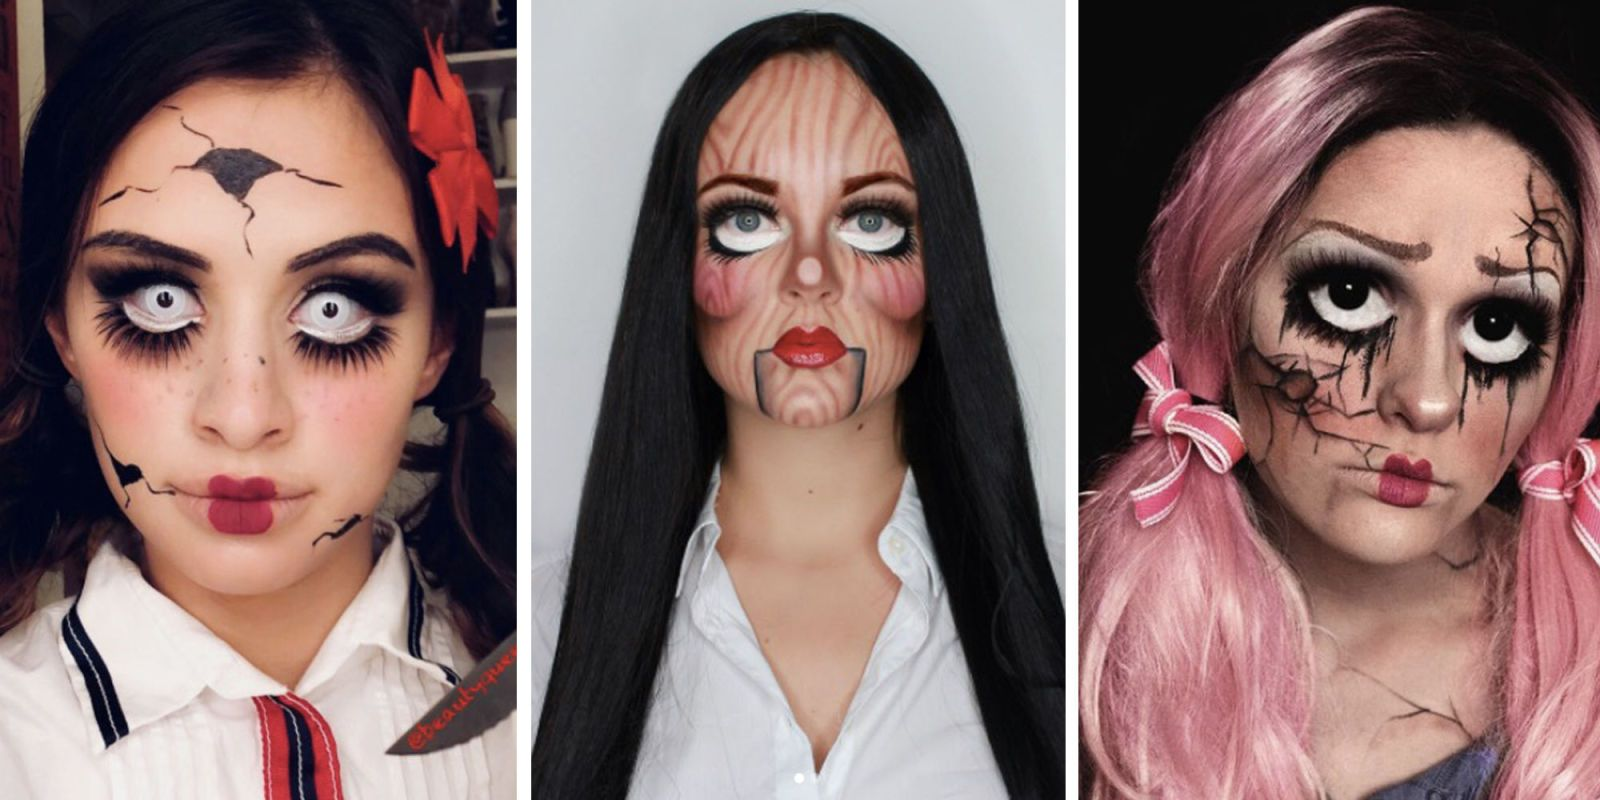 11 Halloween Doll Make-Up Ideas That Are Totally Creepy